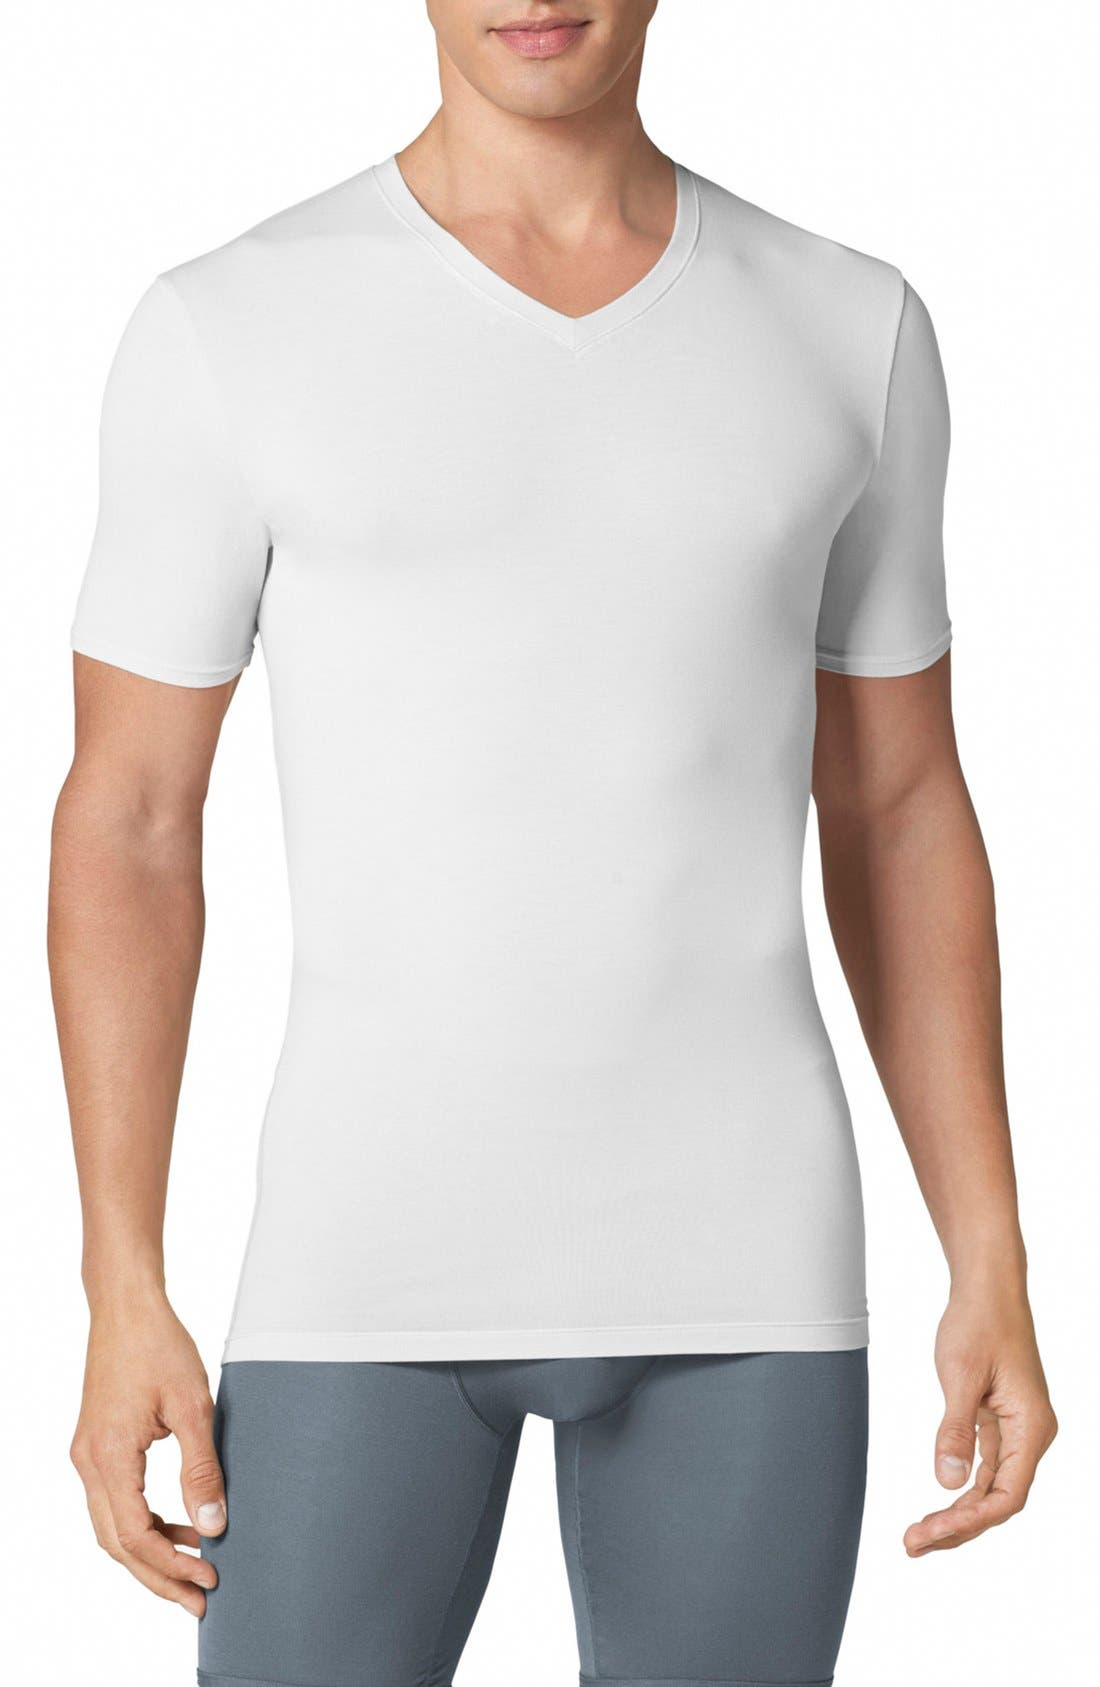 Second Skin High V-Neck Undershirt,                             Main thumbnail 1, color,                             WHITE